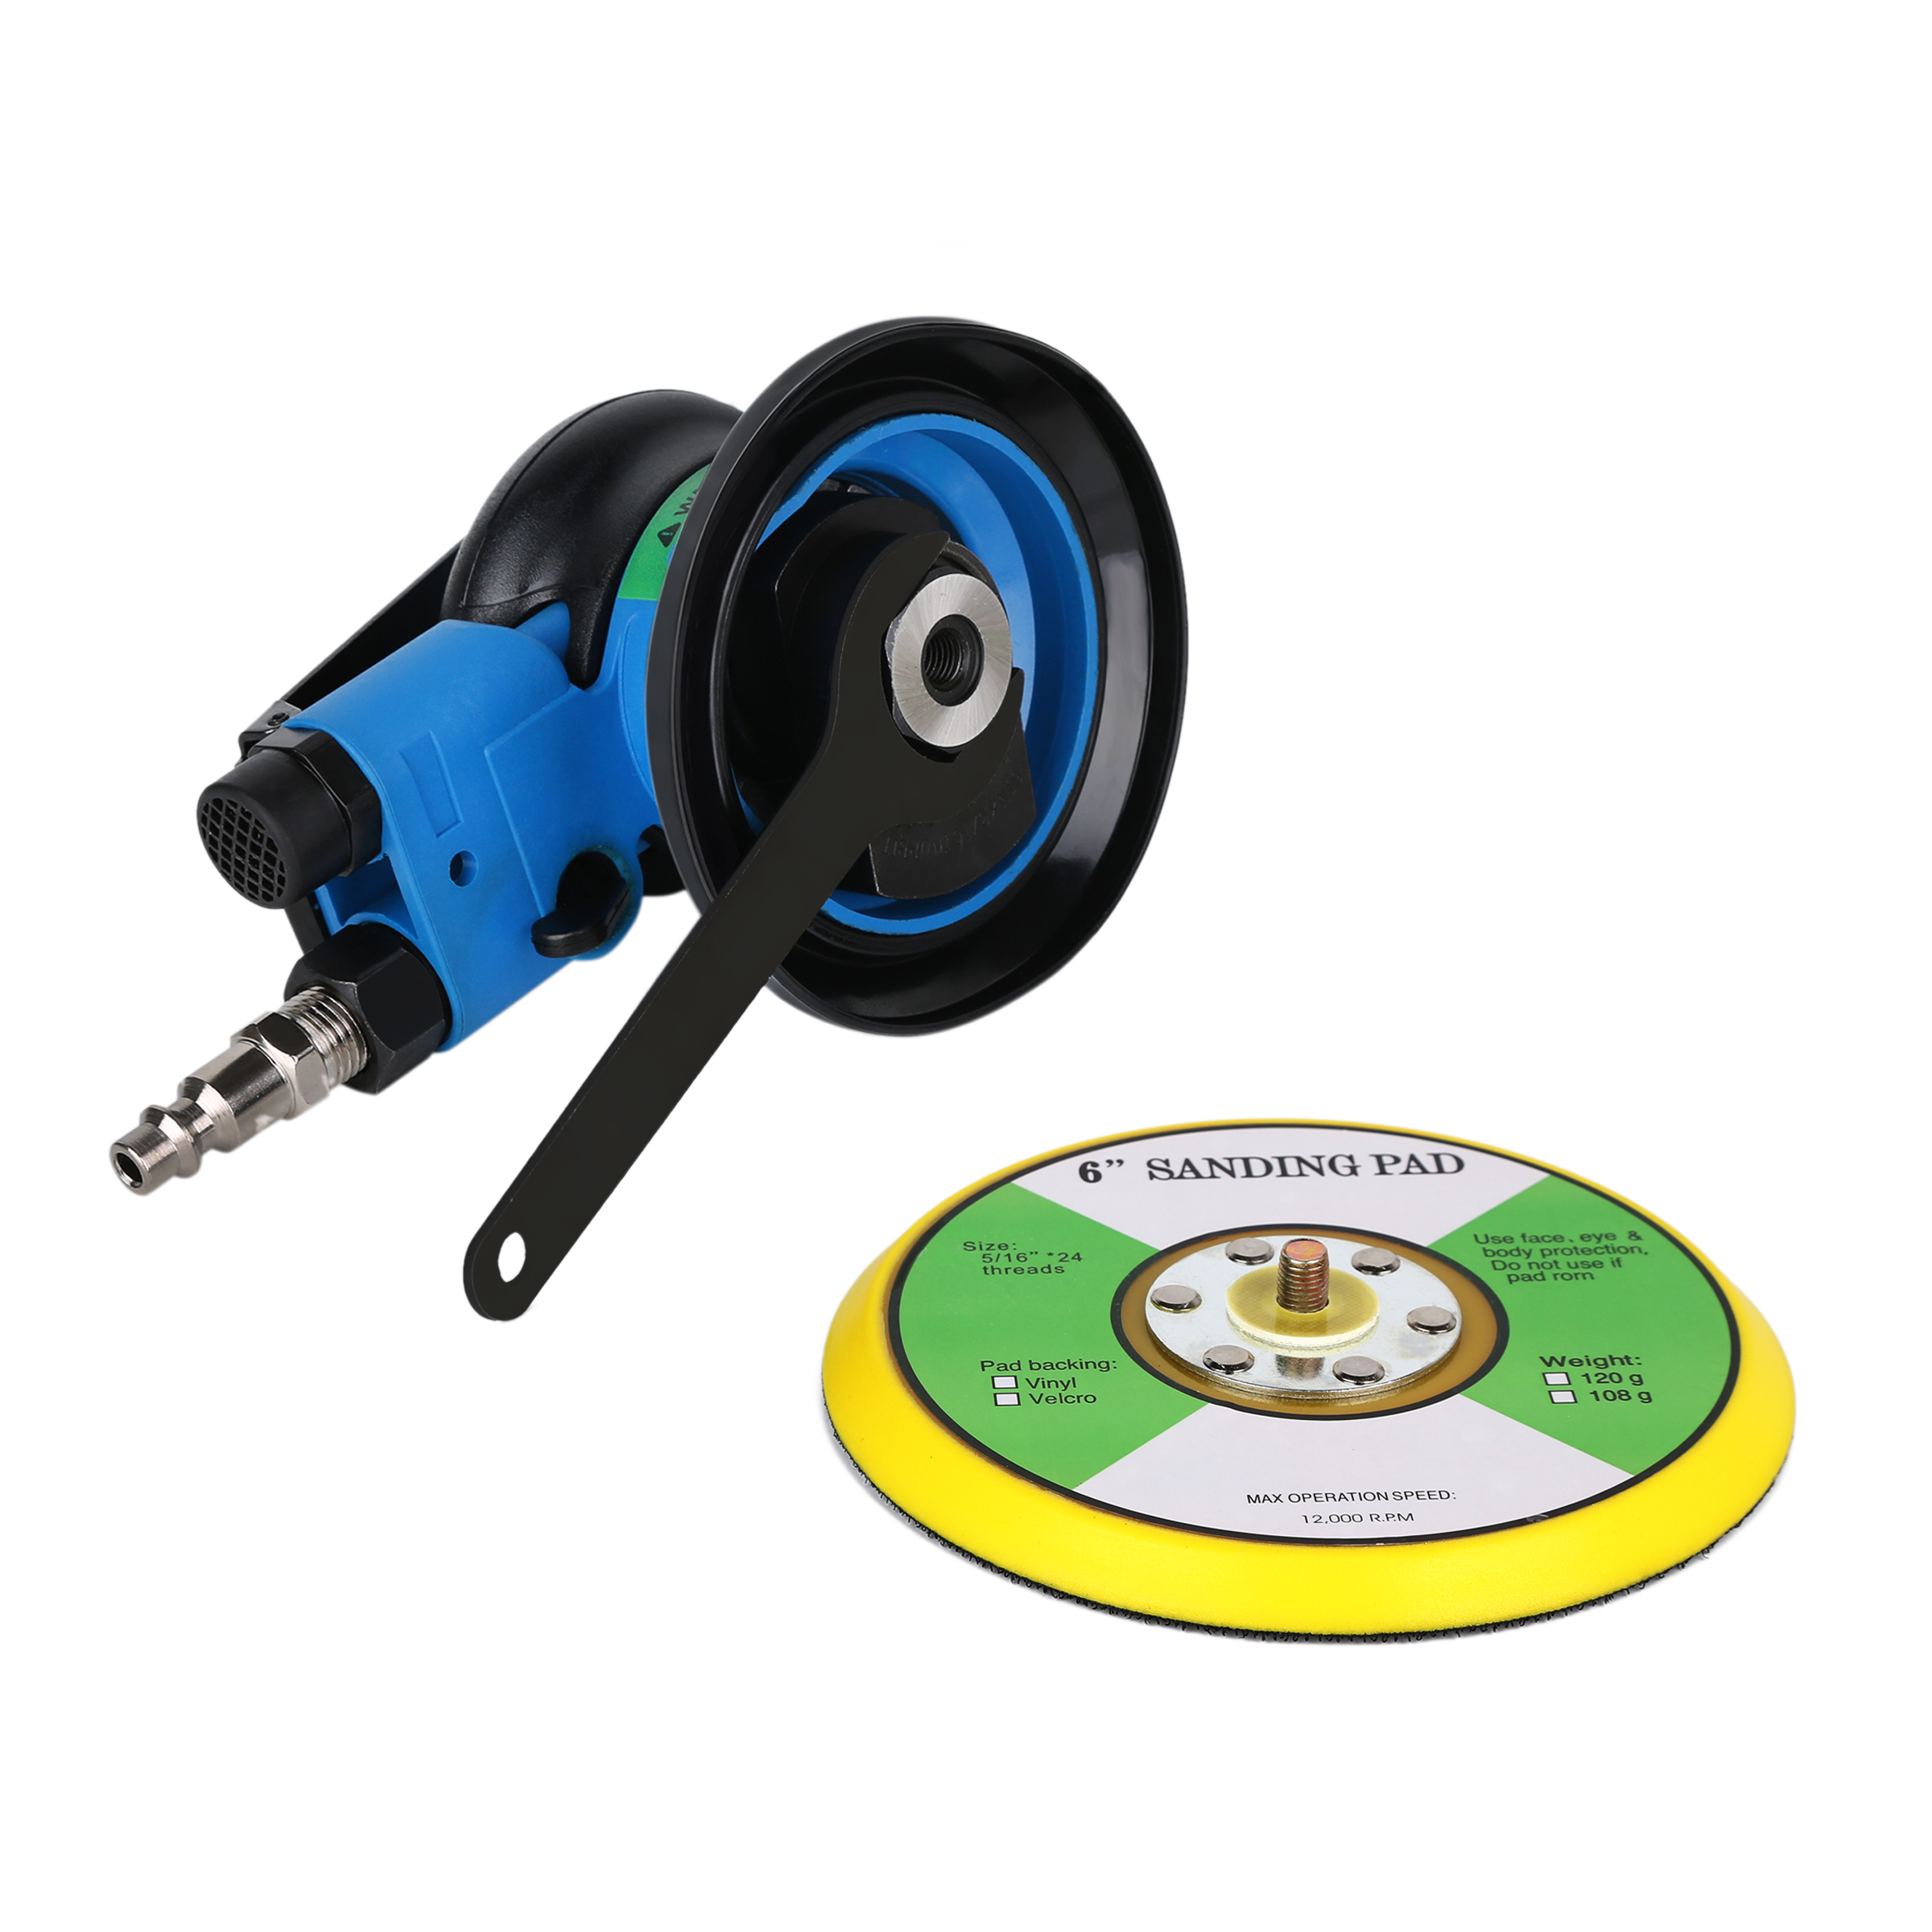 Tools : STARY 6 inch Polisher 12000RPM No-Load Speed 152mm Car Paint Care Tool Polishing Machine Sander Electric Woodworking Polisher